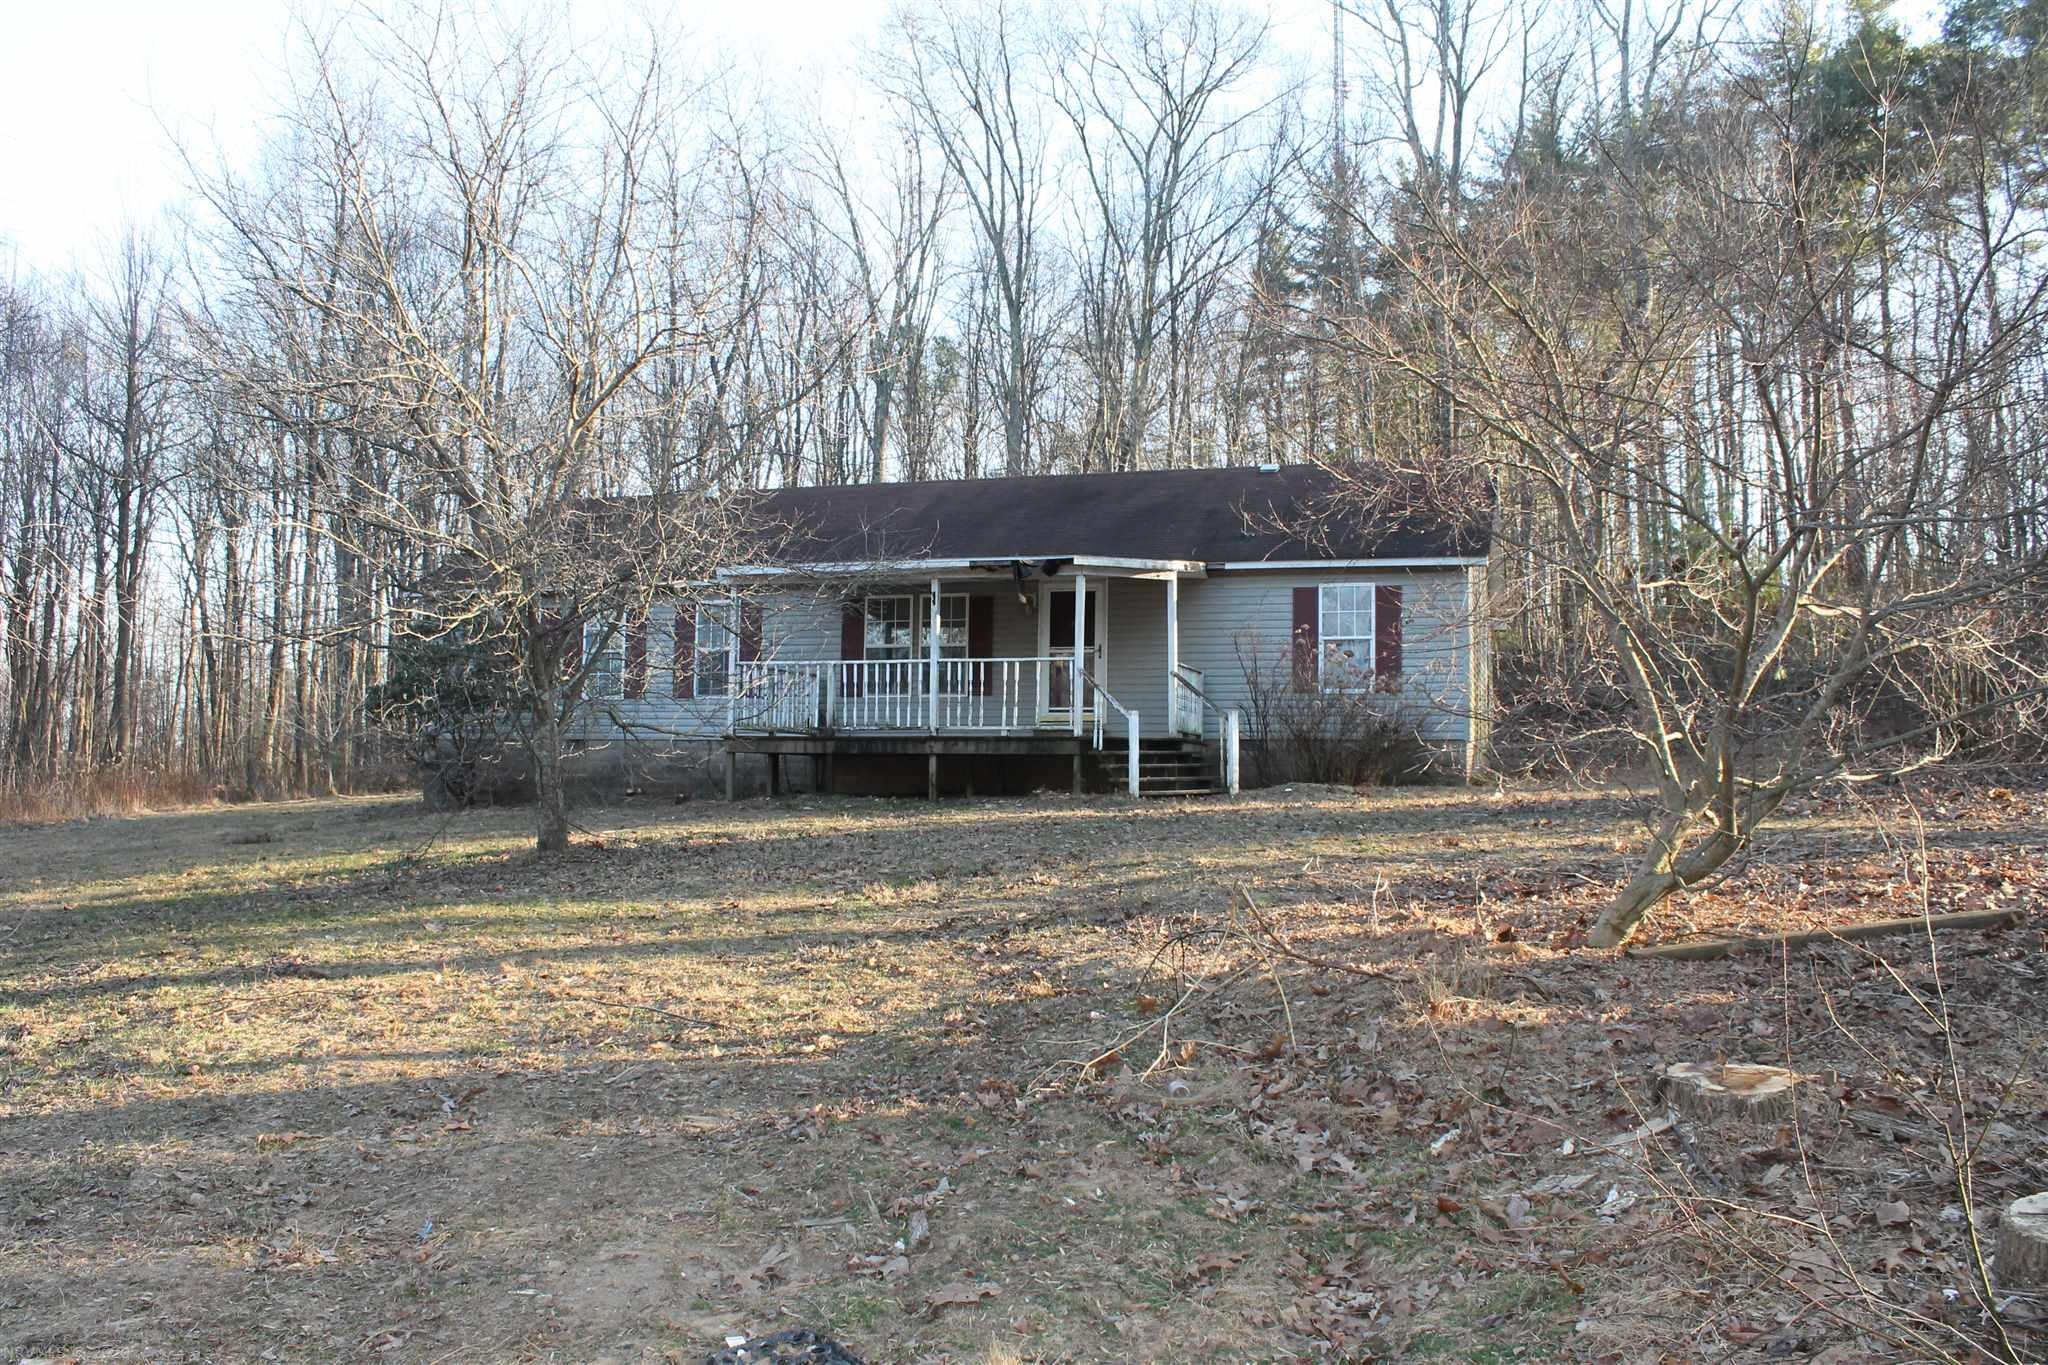 Great fixer upper. 10 acres of wooded land for expansion or hunting. Great privacy.